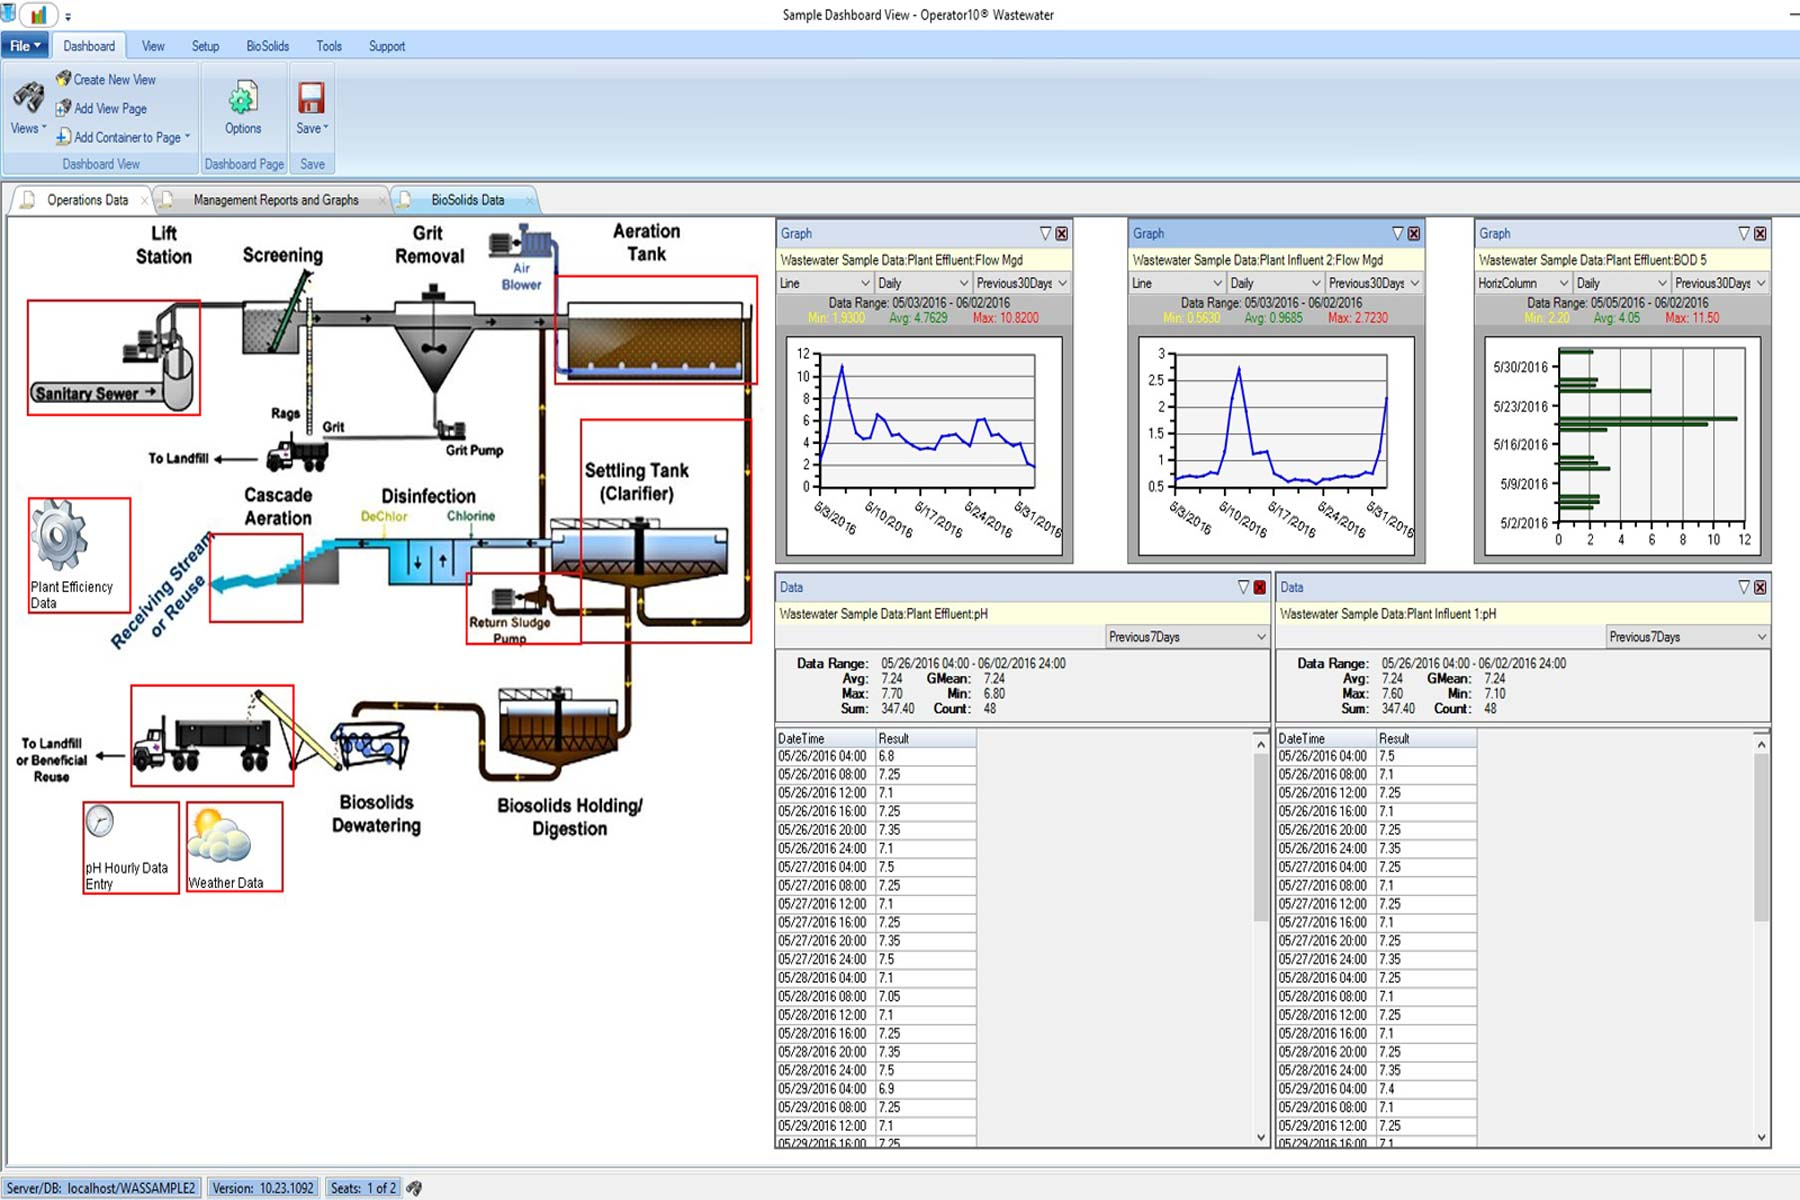 Operator10 wastewater dashboard.